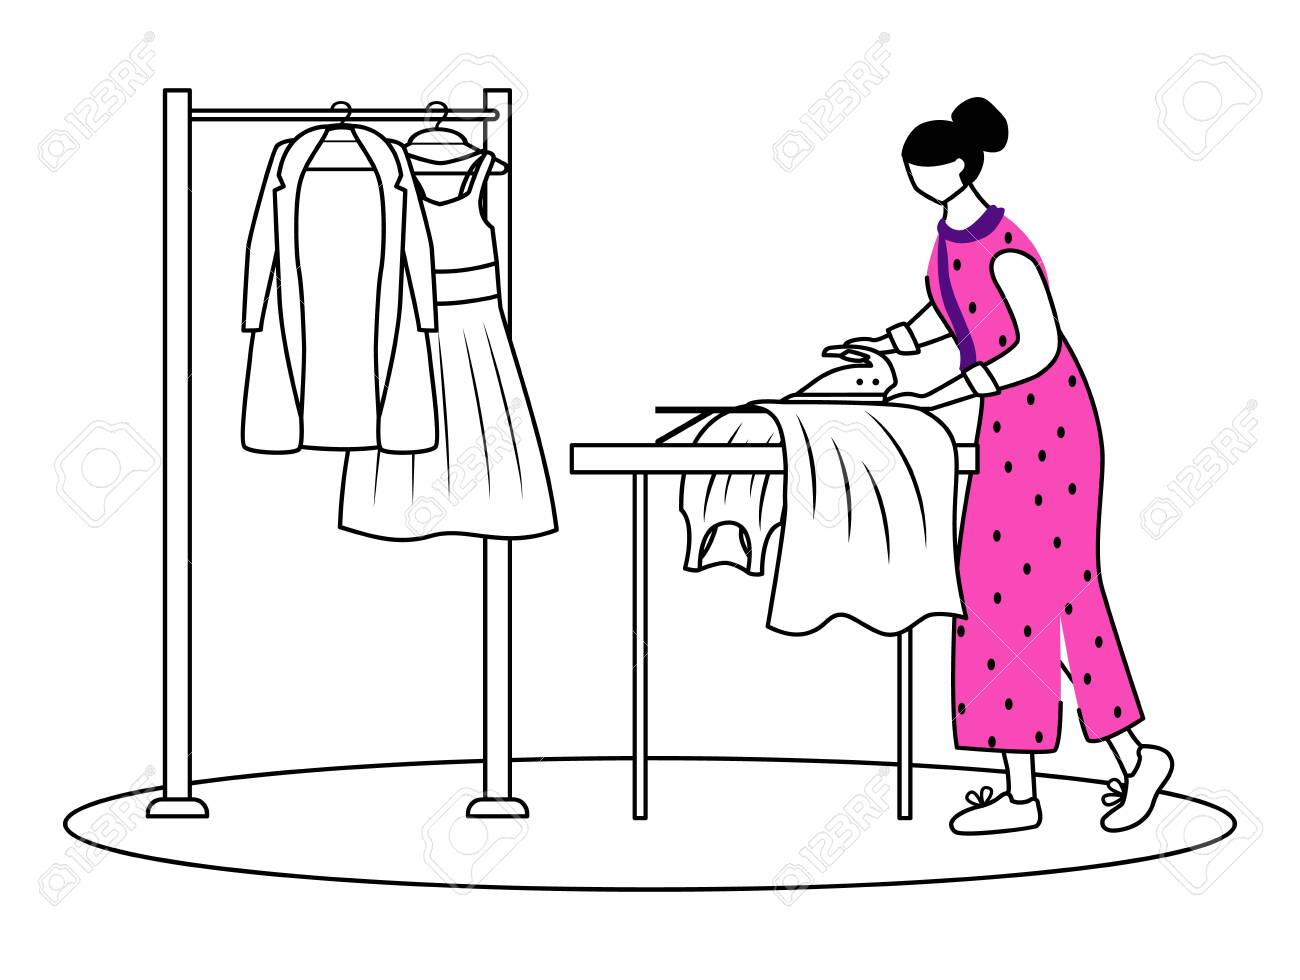 Ironing Dresses Jackets Flat Contour Vector Illustration Preparing Royalty Free Cliparts Vectors And Stock Illustration Image 138456615